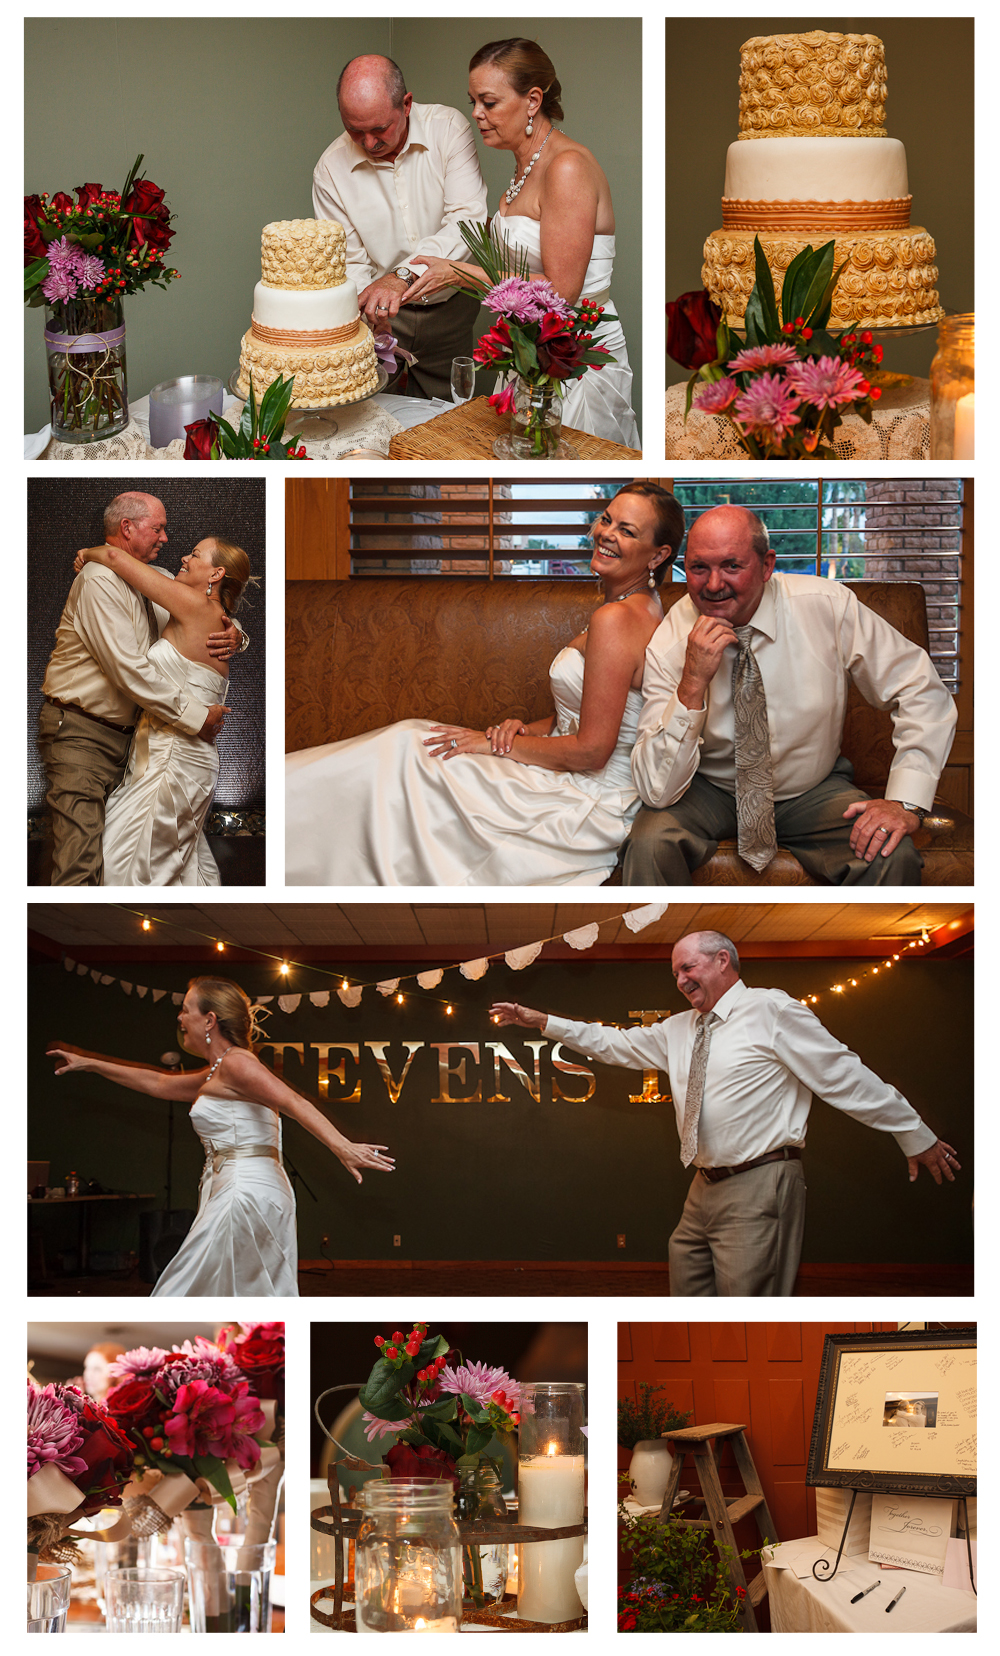 I love all the details put into this wedding and I just love my family! Blessed!